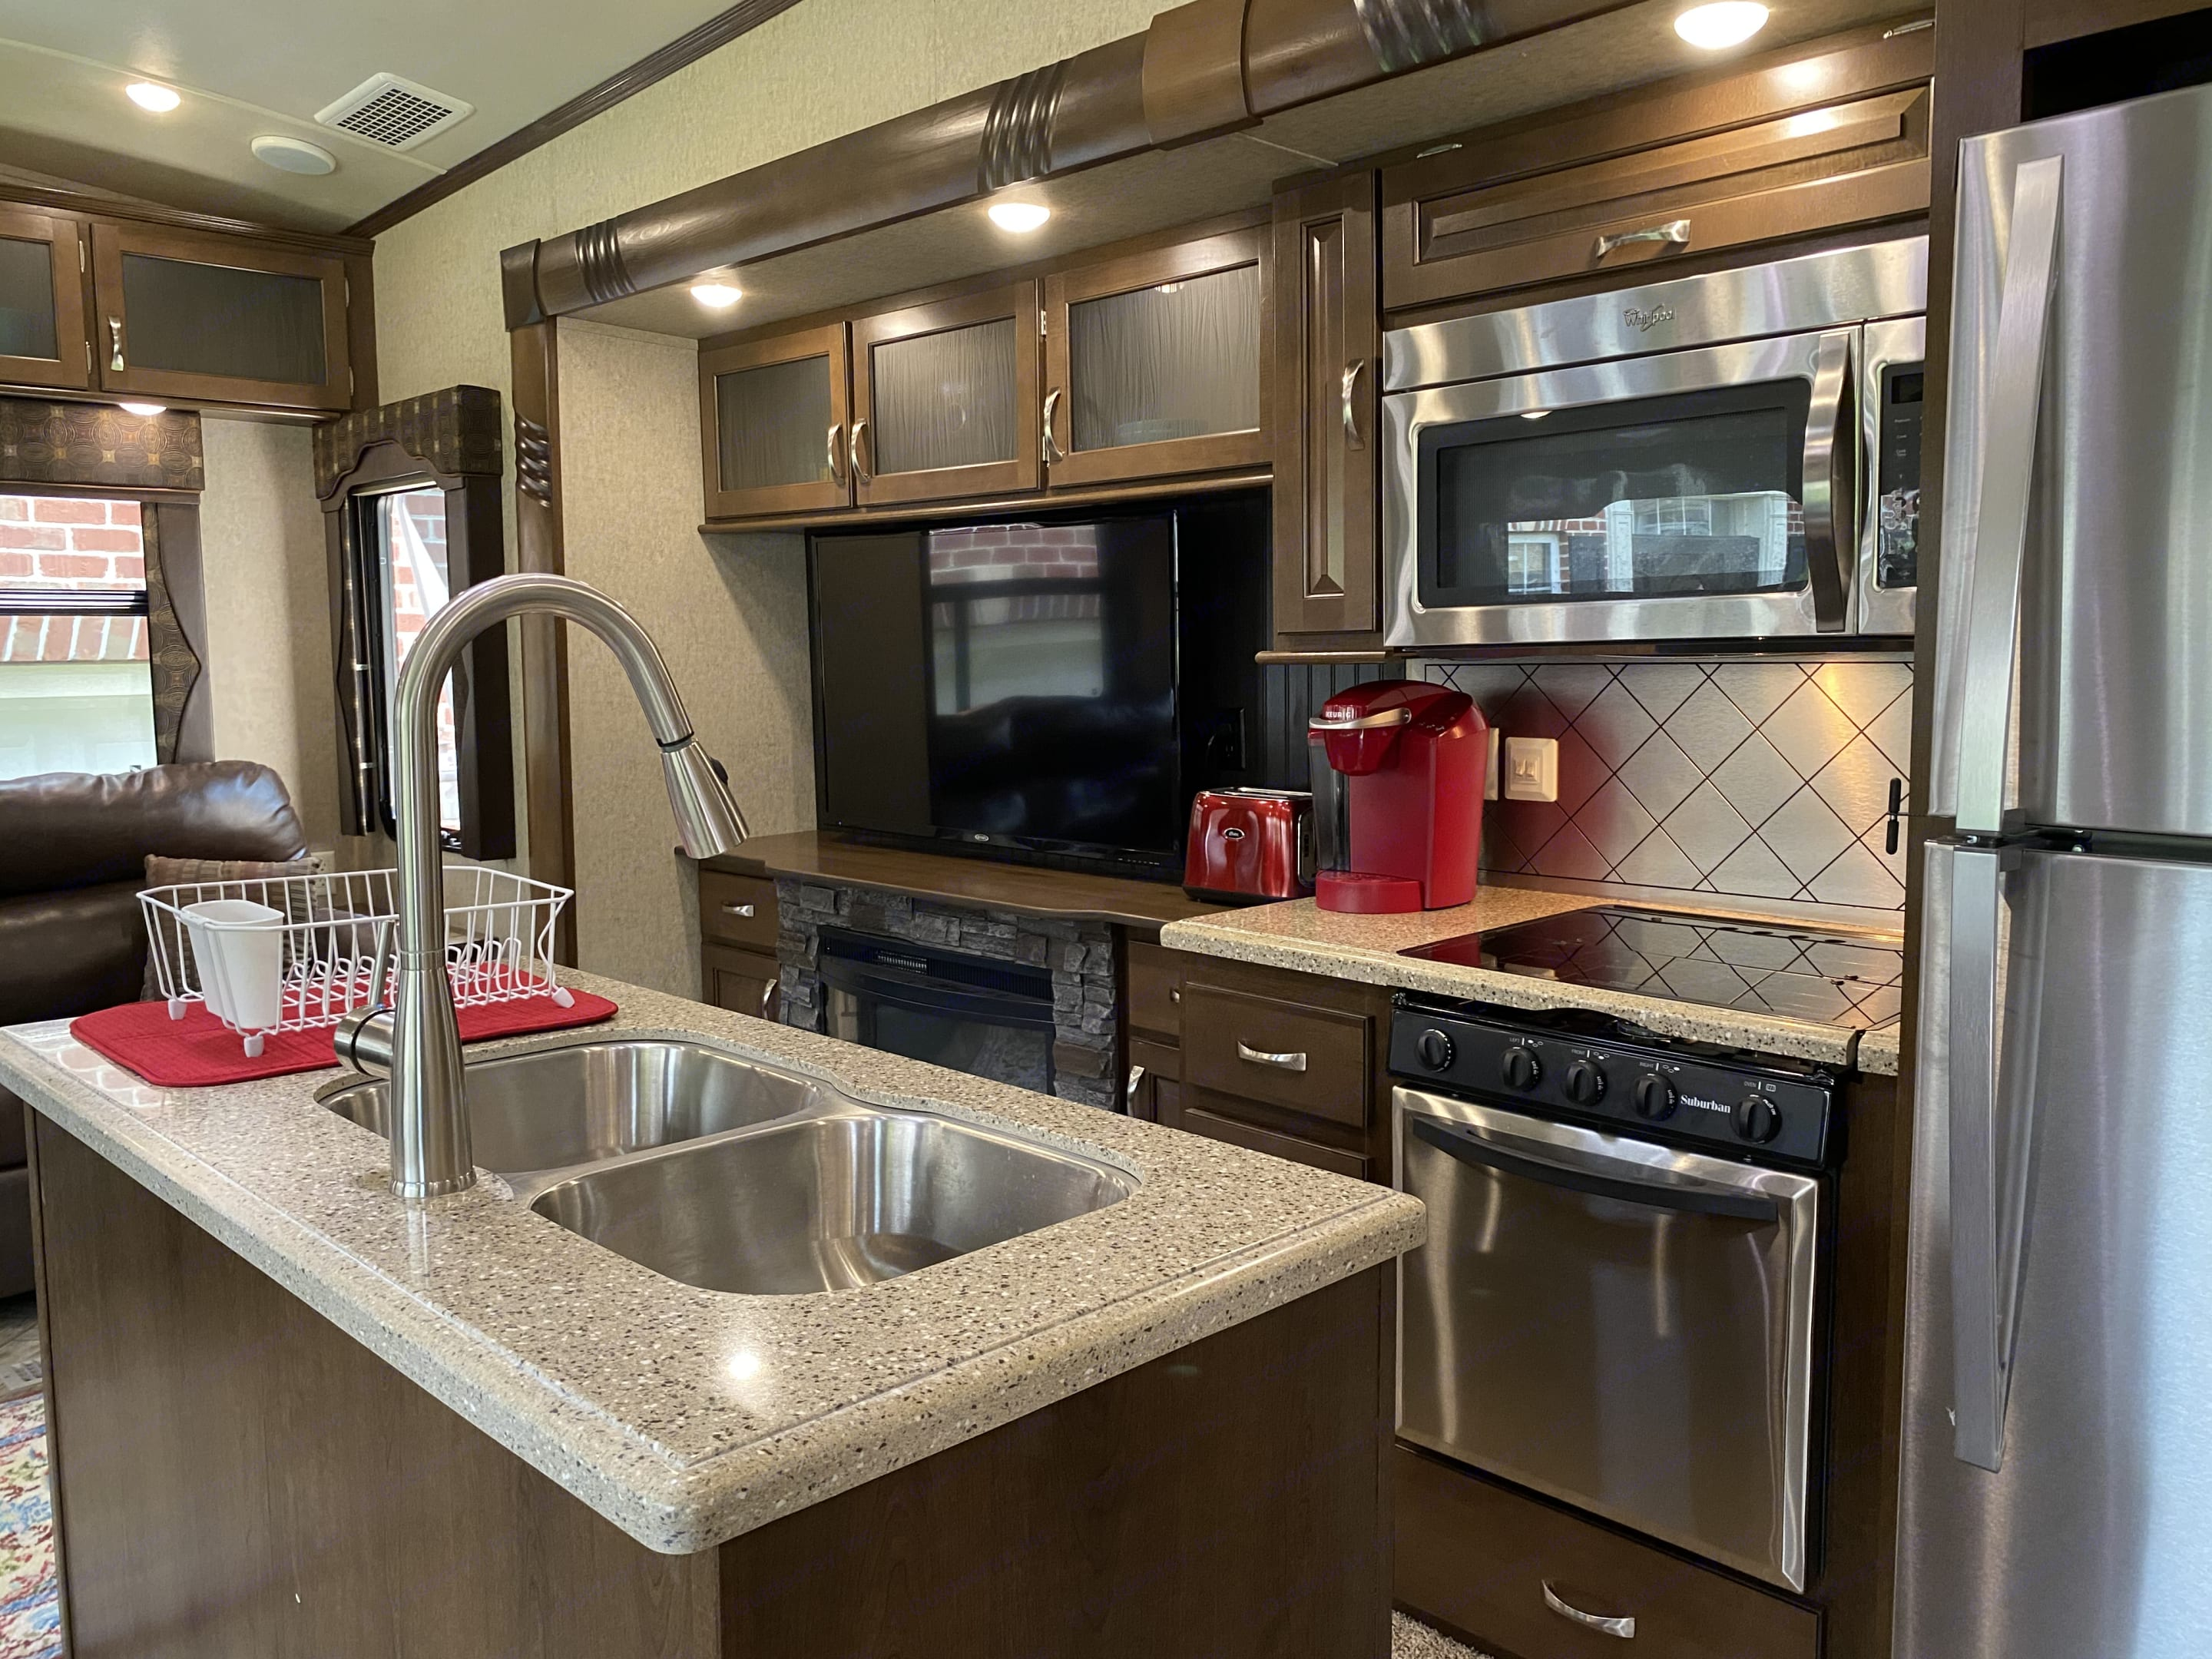 Full-size kitchen with 3 burner gas stove & oven, microwave, and large refrigerator/freezer. Coffee machine, toaster, table &  silverware for 4 incl.. Forest River Cedar Creek Fifth Wheel 2016